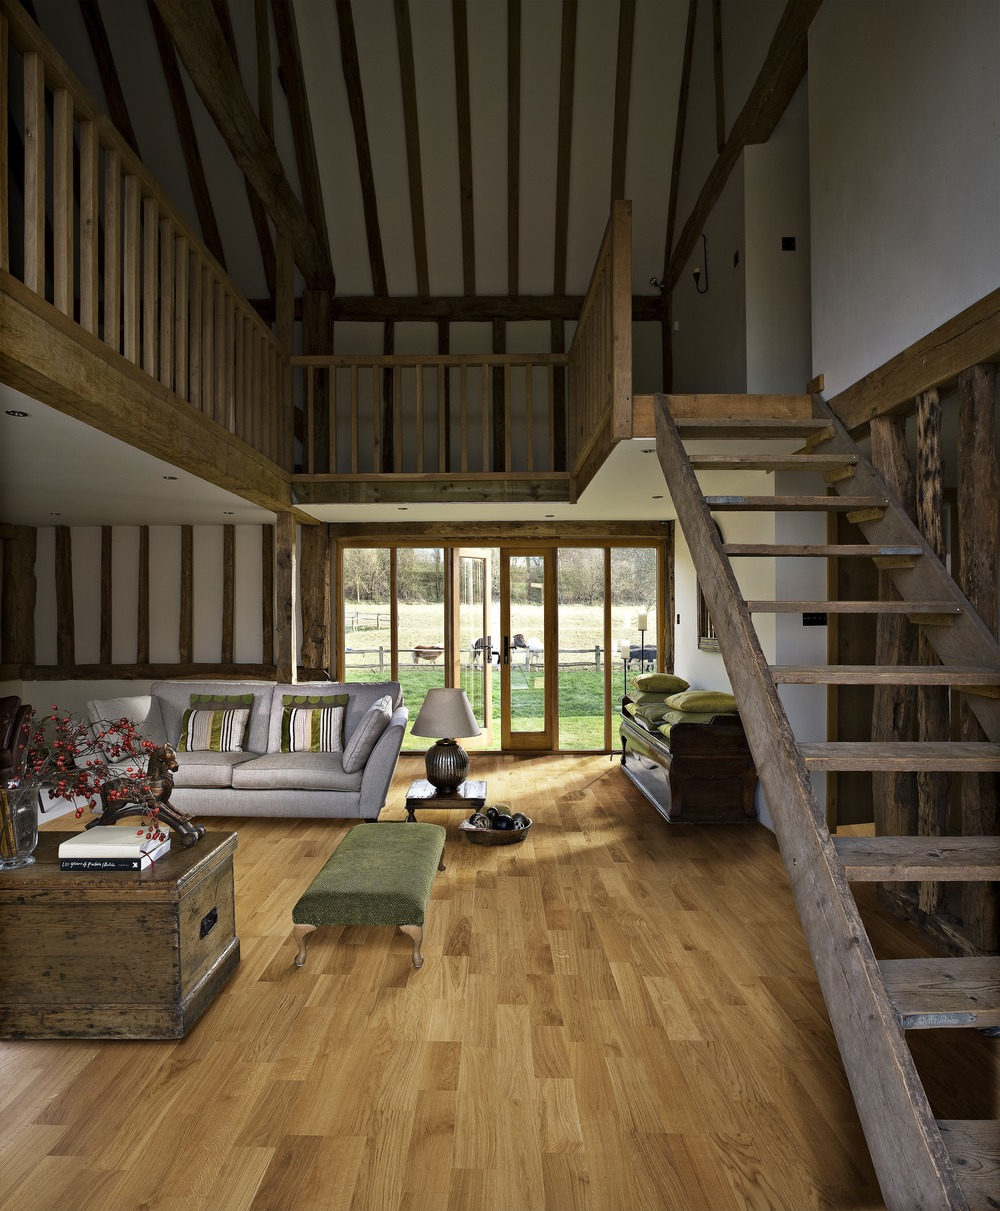 internal staircase and wooden floor